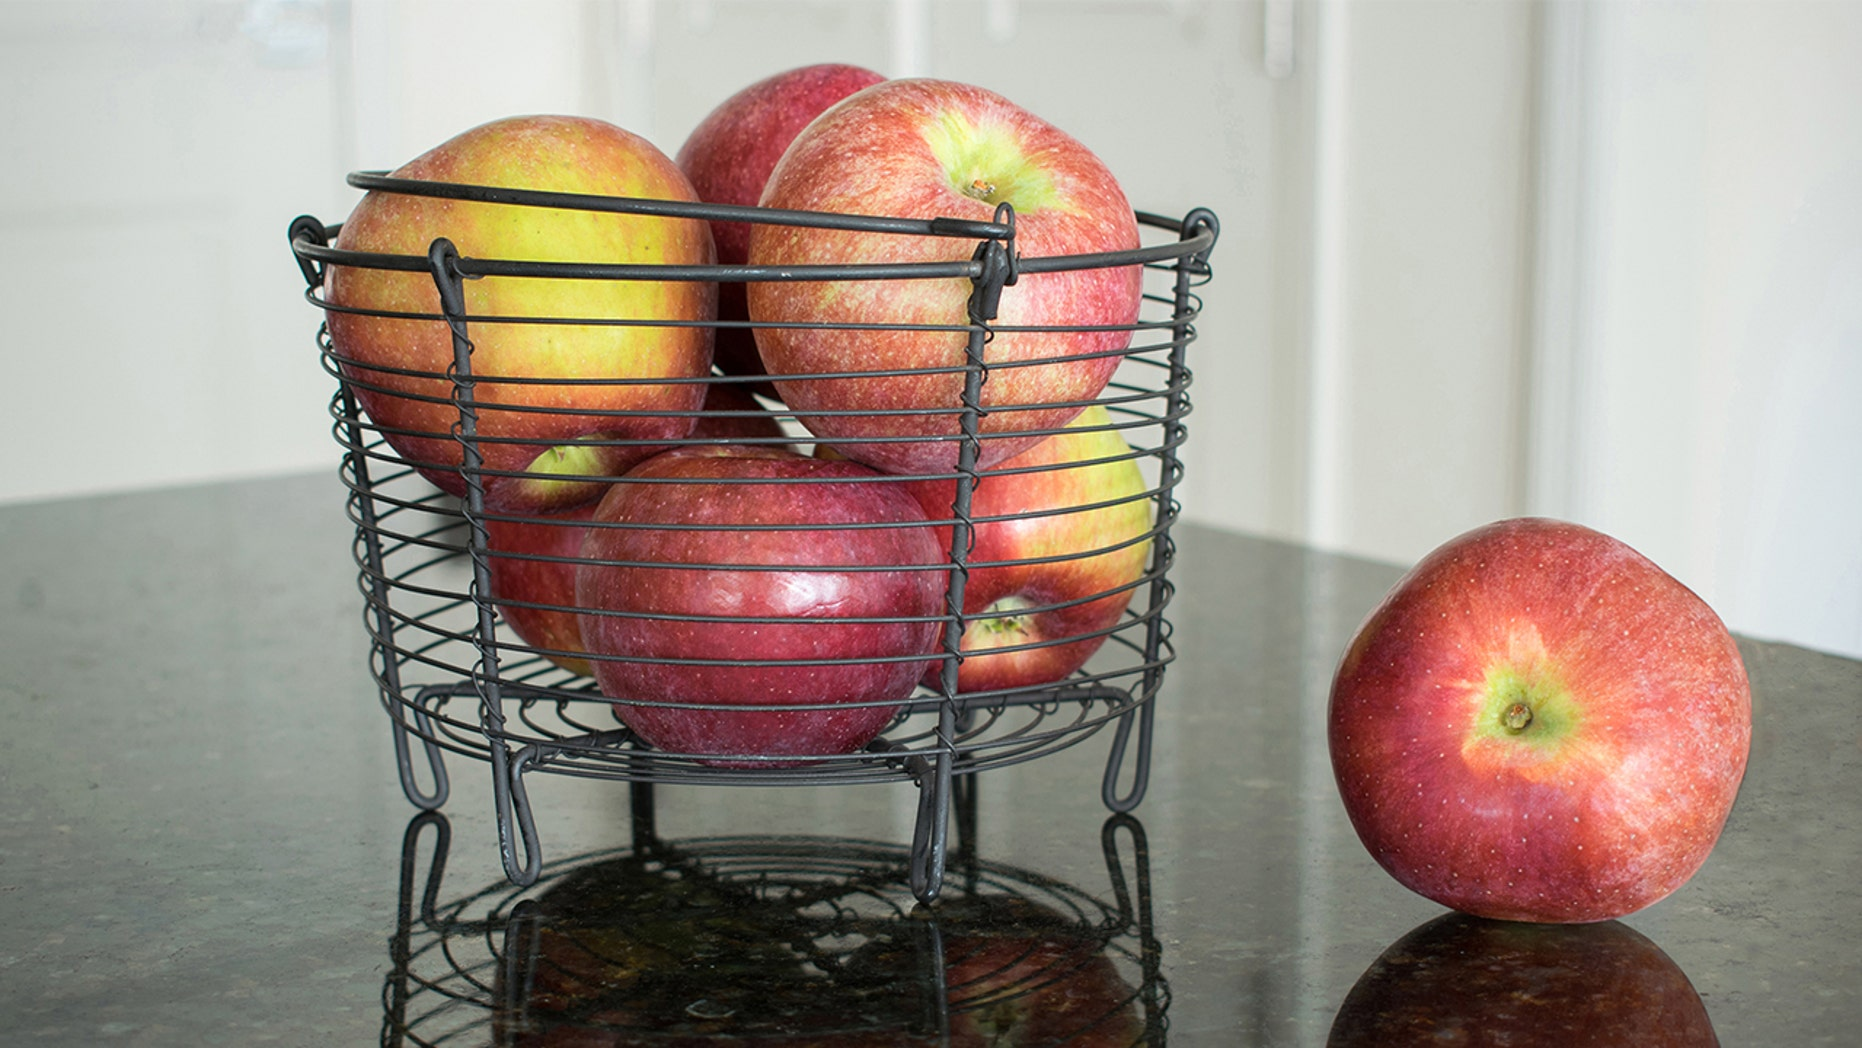 An apple a day keeps the doctor away unless it's gone bad from sitting on the counter.